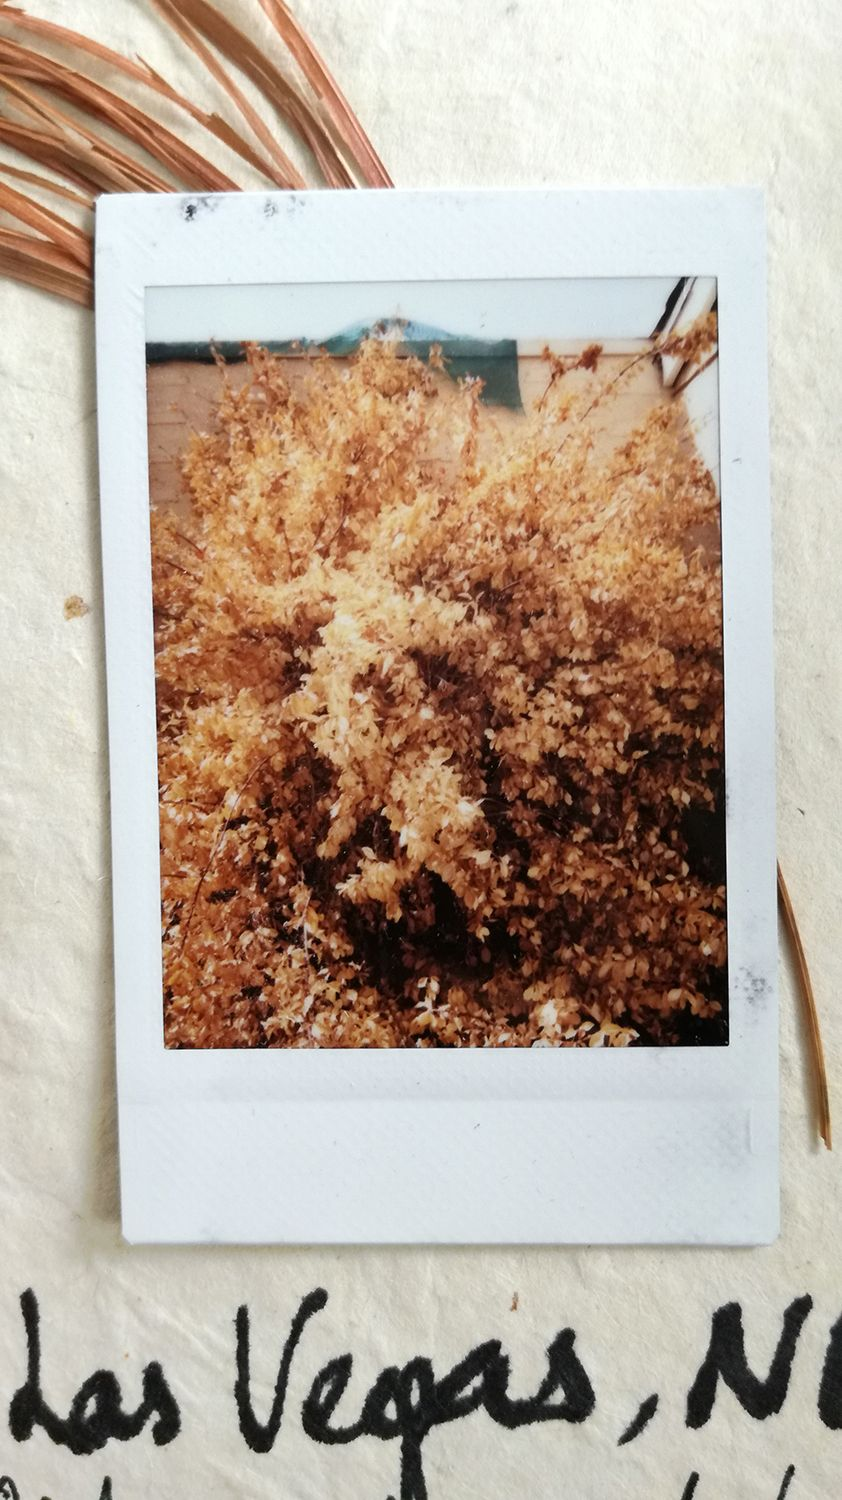 Kimdary_yin_Polaroid_Podcast_travel_neworleans